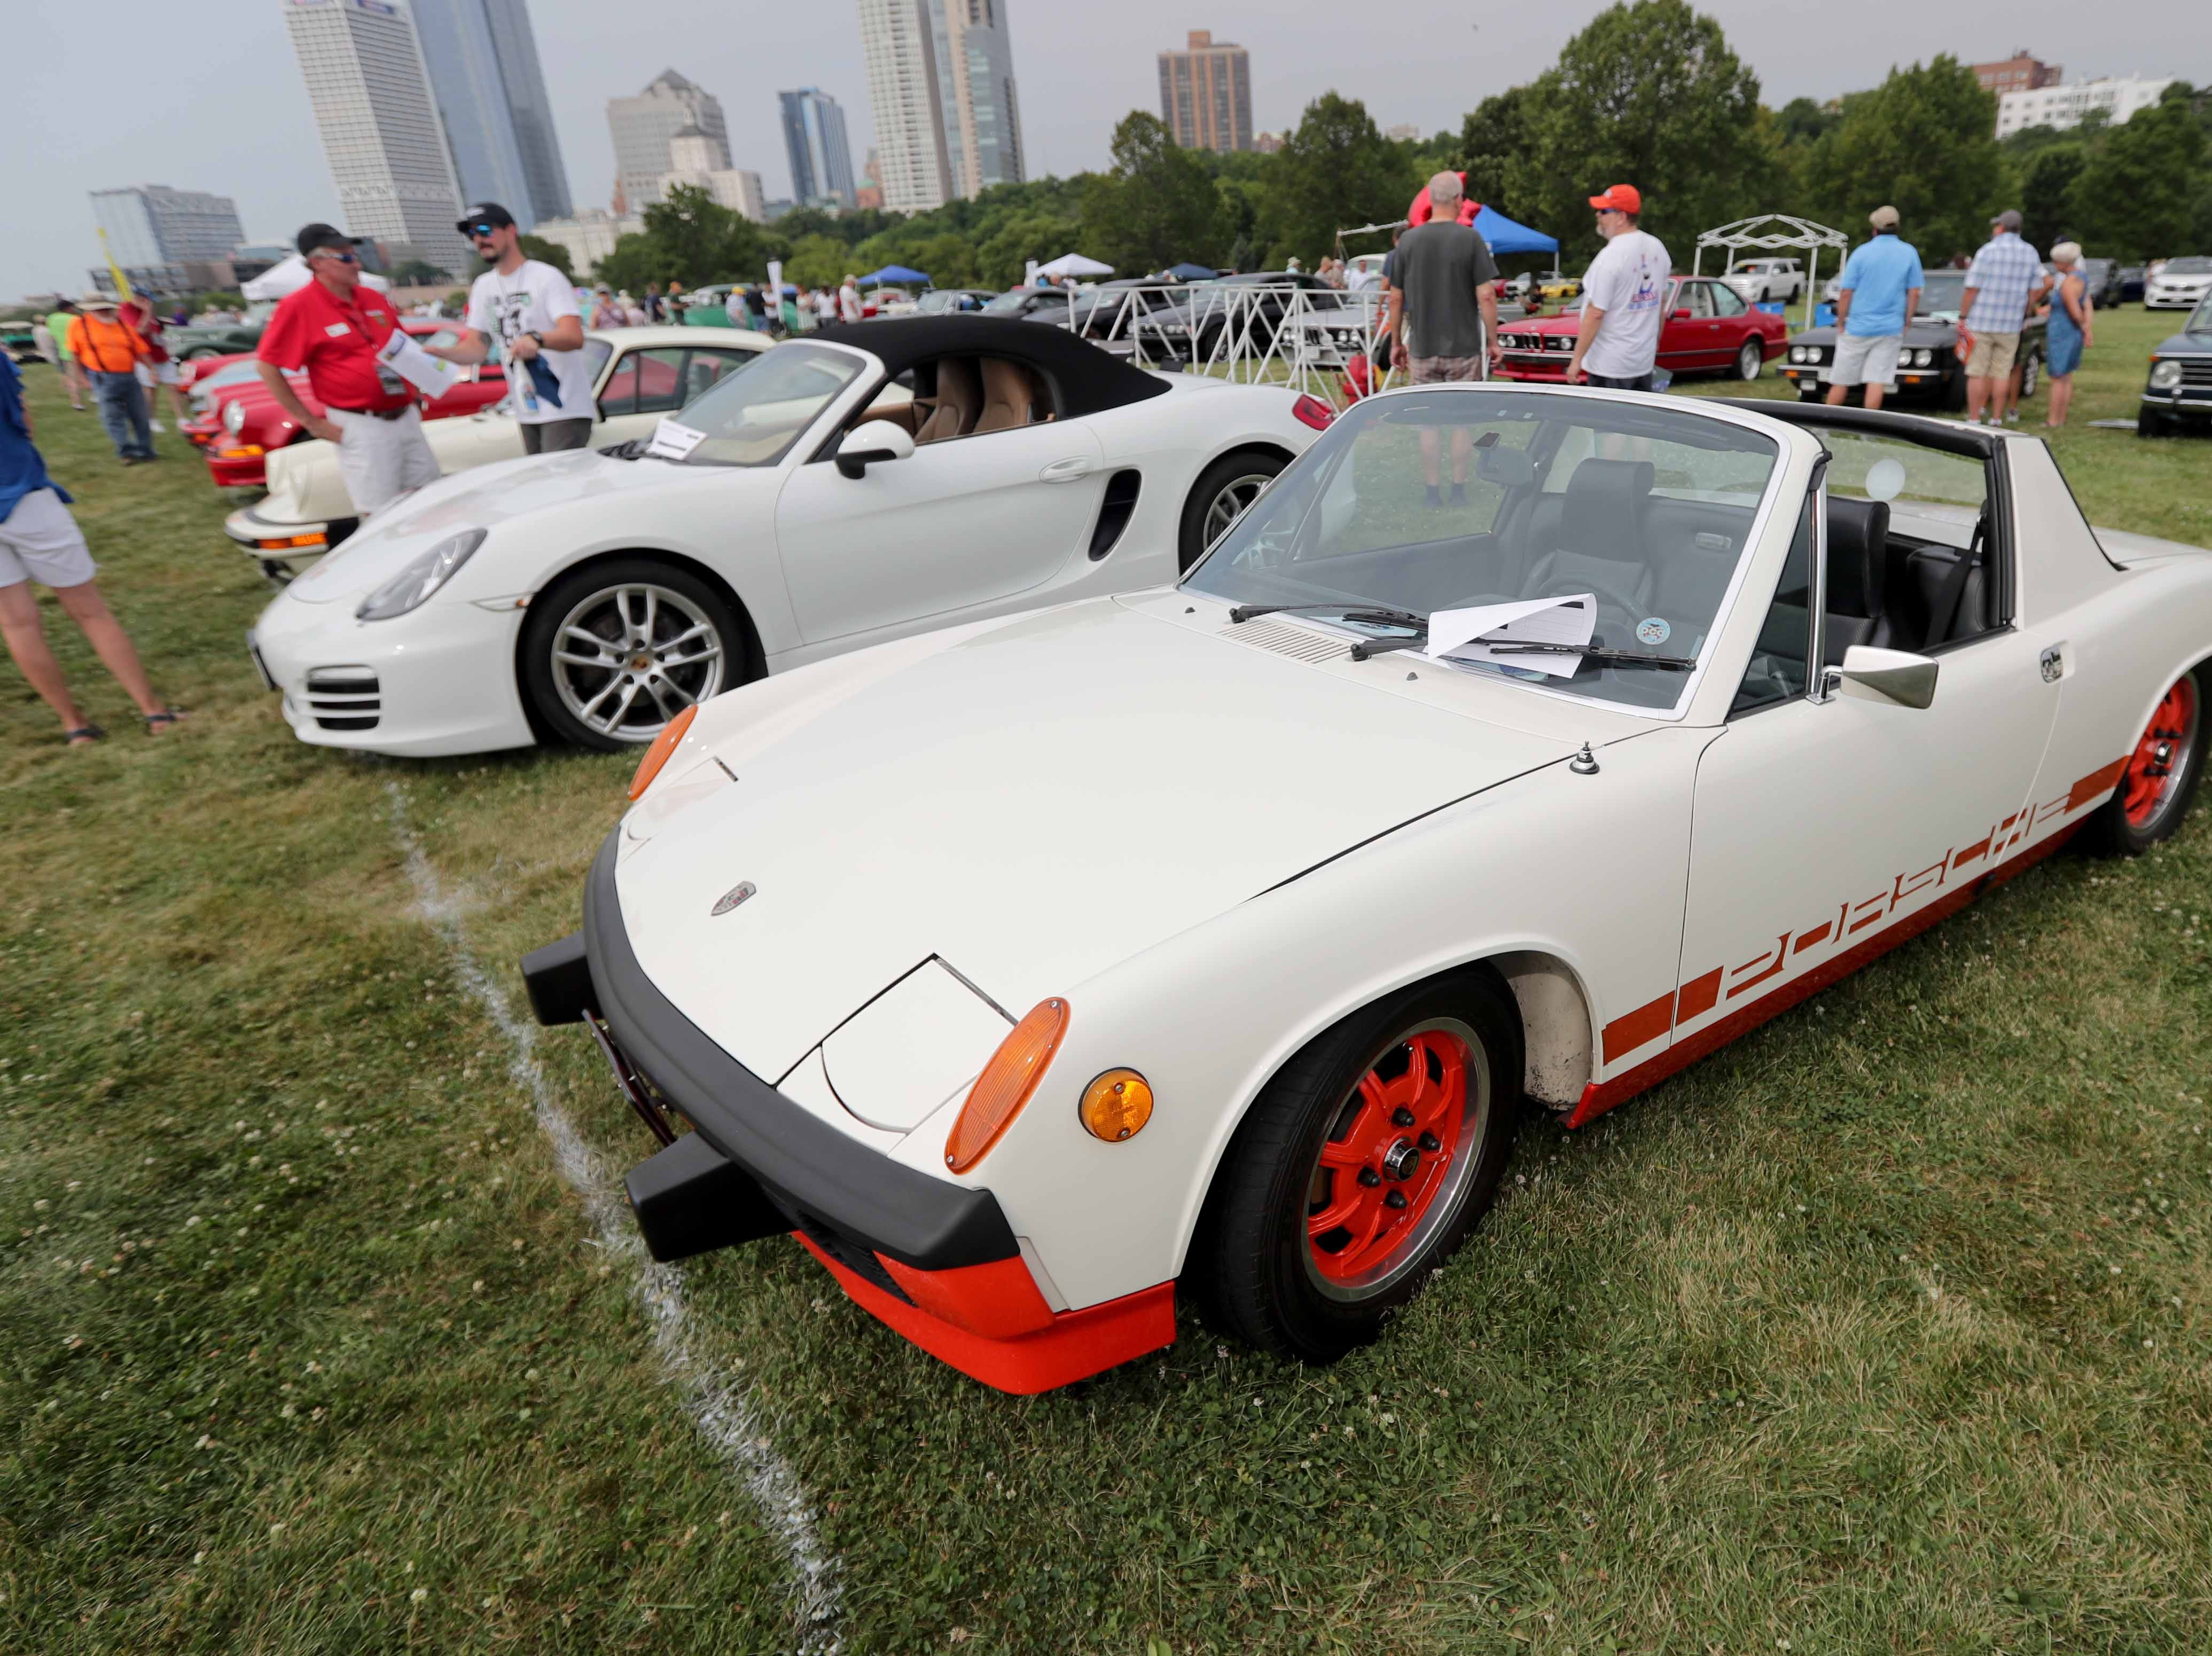 1974 Porsche 914. The 2018Milwaukee Concours d'Elegance car show took place at Veterans Park in Milwaukee on Sunday, August 5, 2018. The show features vintage vehicles from Ferrari and Jaguar to classic mint condition Chevys and Corvettes.     -  Photo by Mike De Sisti / Milwaukee Journal Sentinel